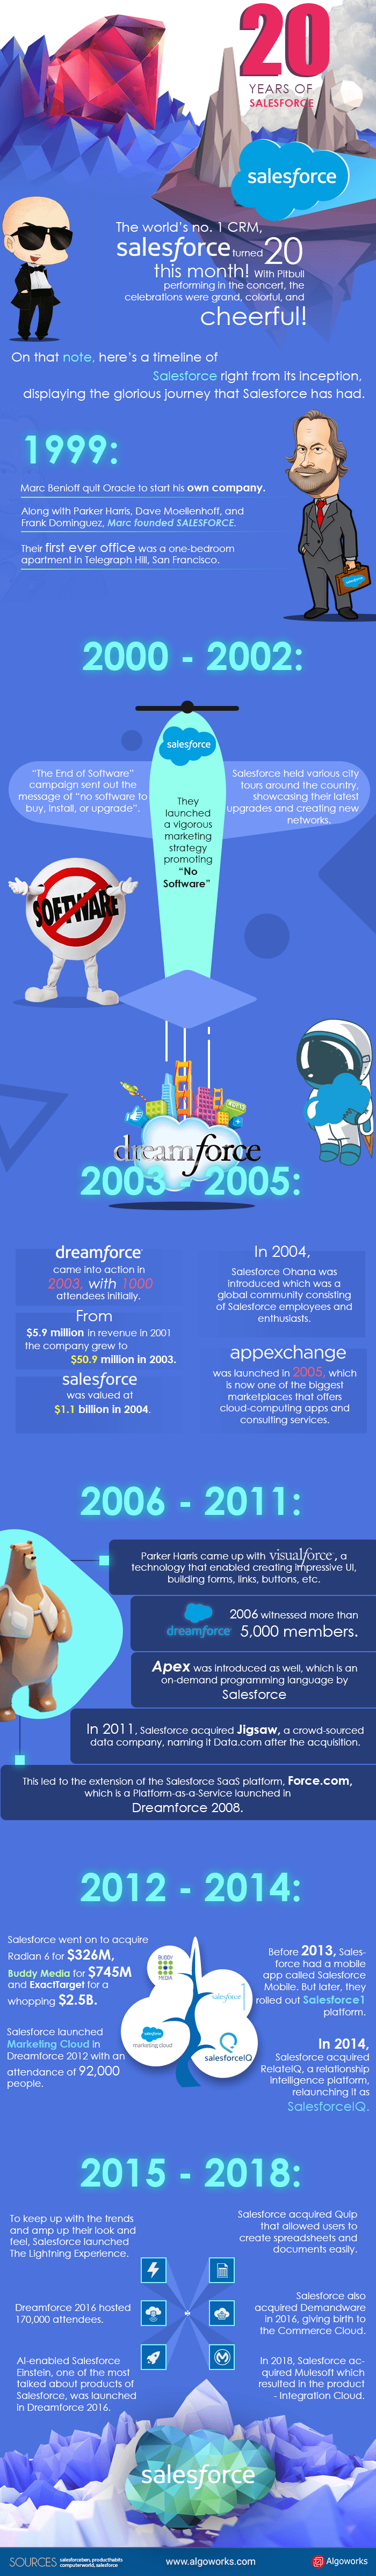 20 Years of Salesforce Timeline